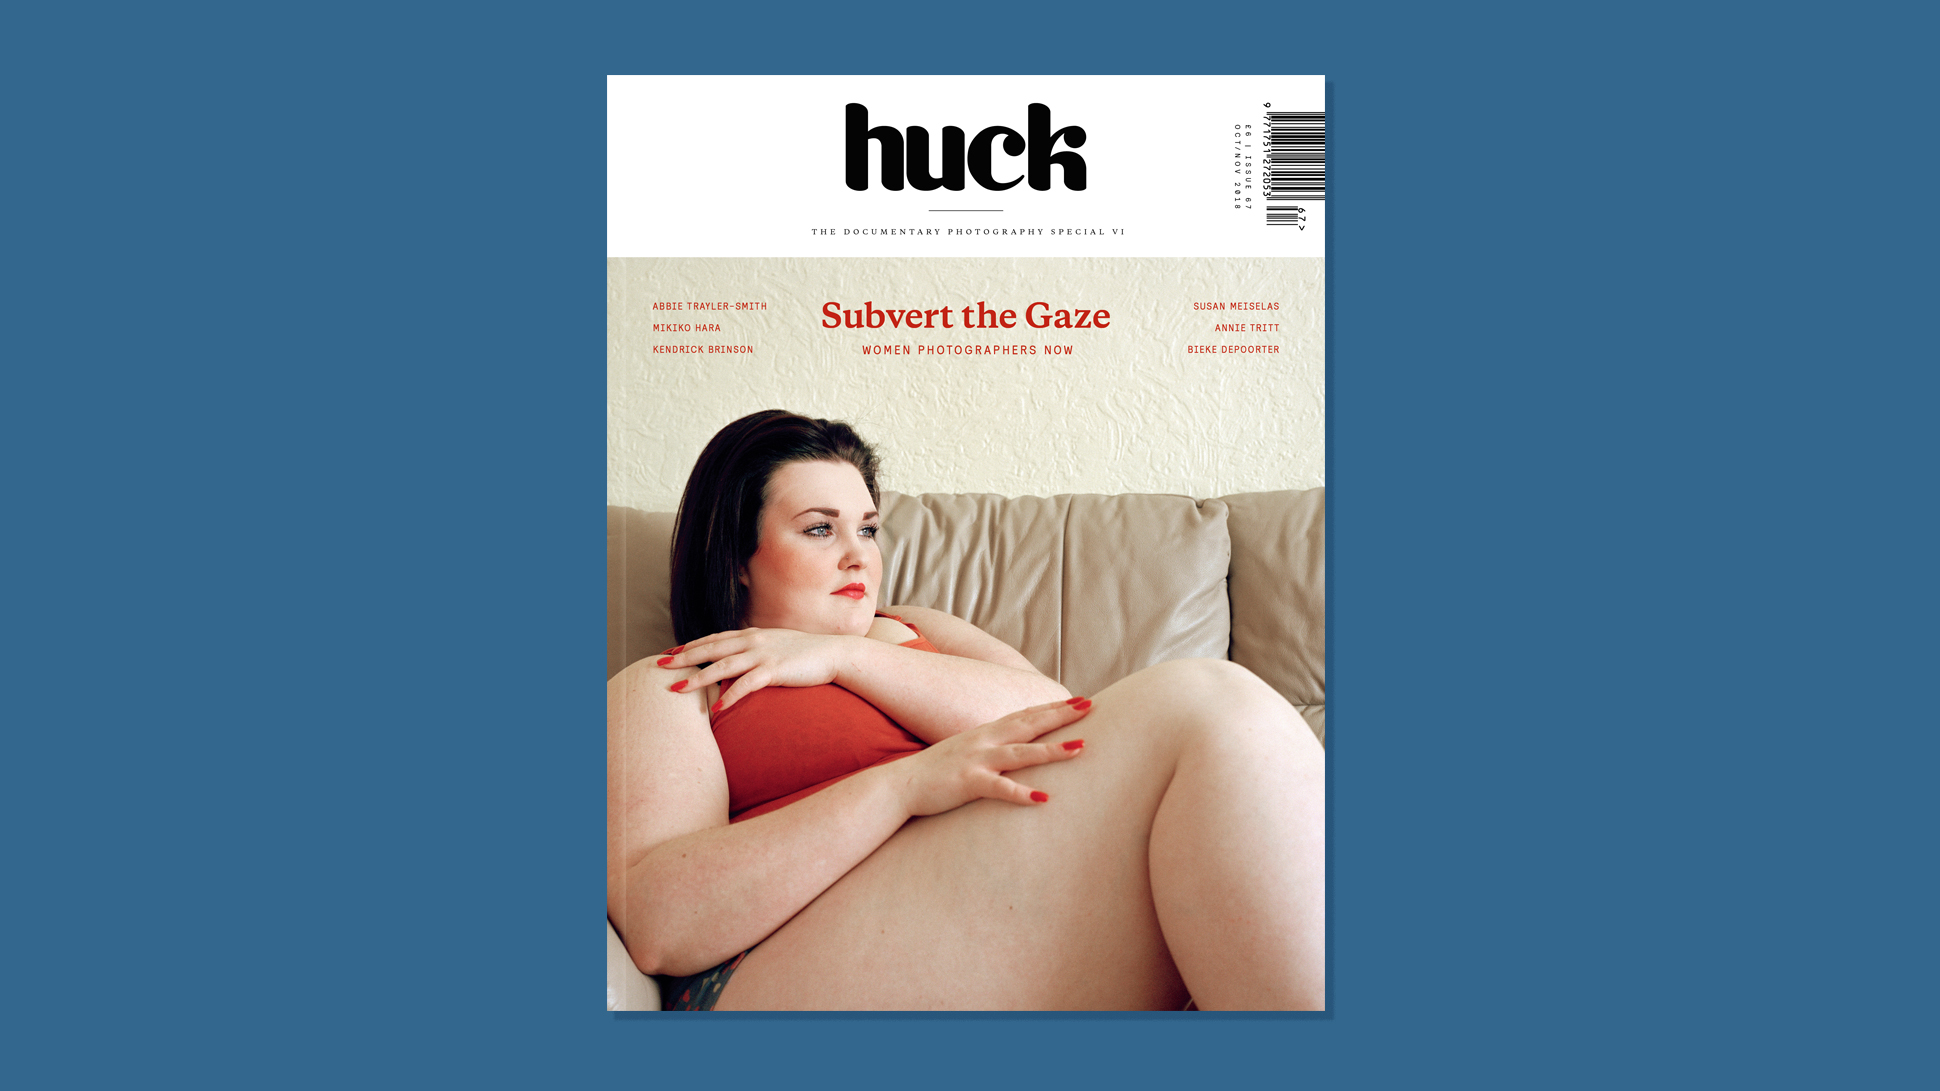 Huck 67: An all-woman documentary photography special